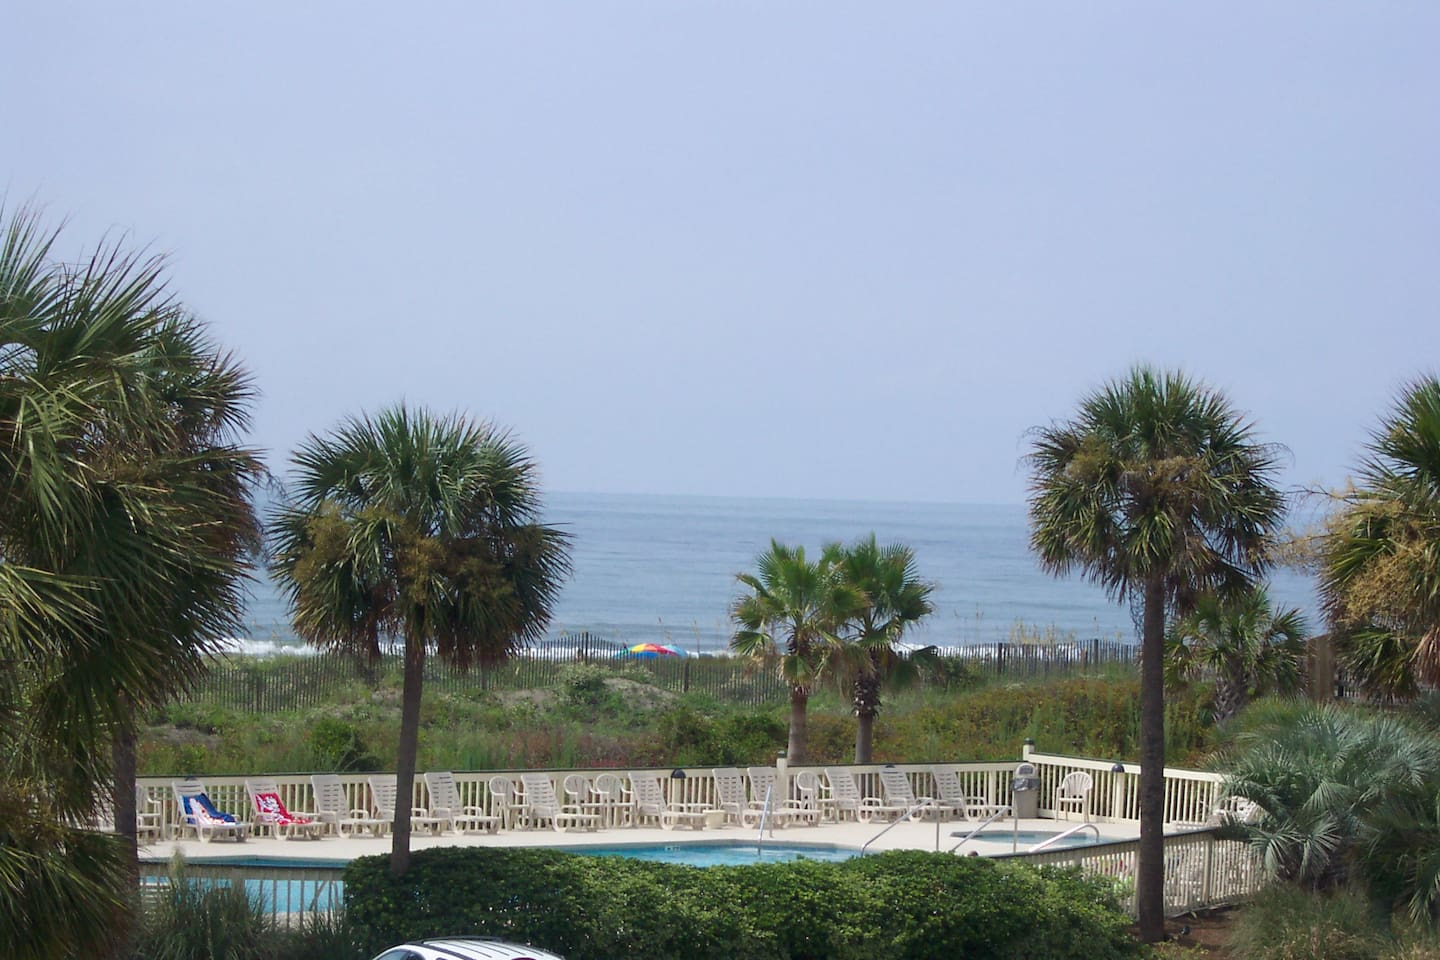 This pic of the view is taken from our balcony, and shared from LR and Kit, as we face straight out in the middle bldg.